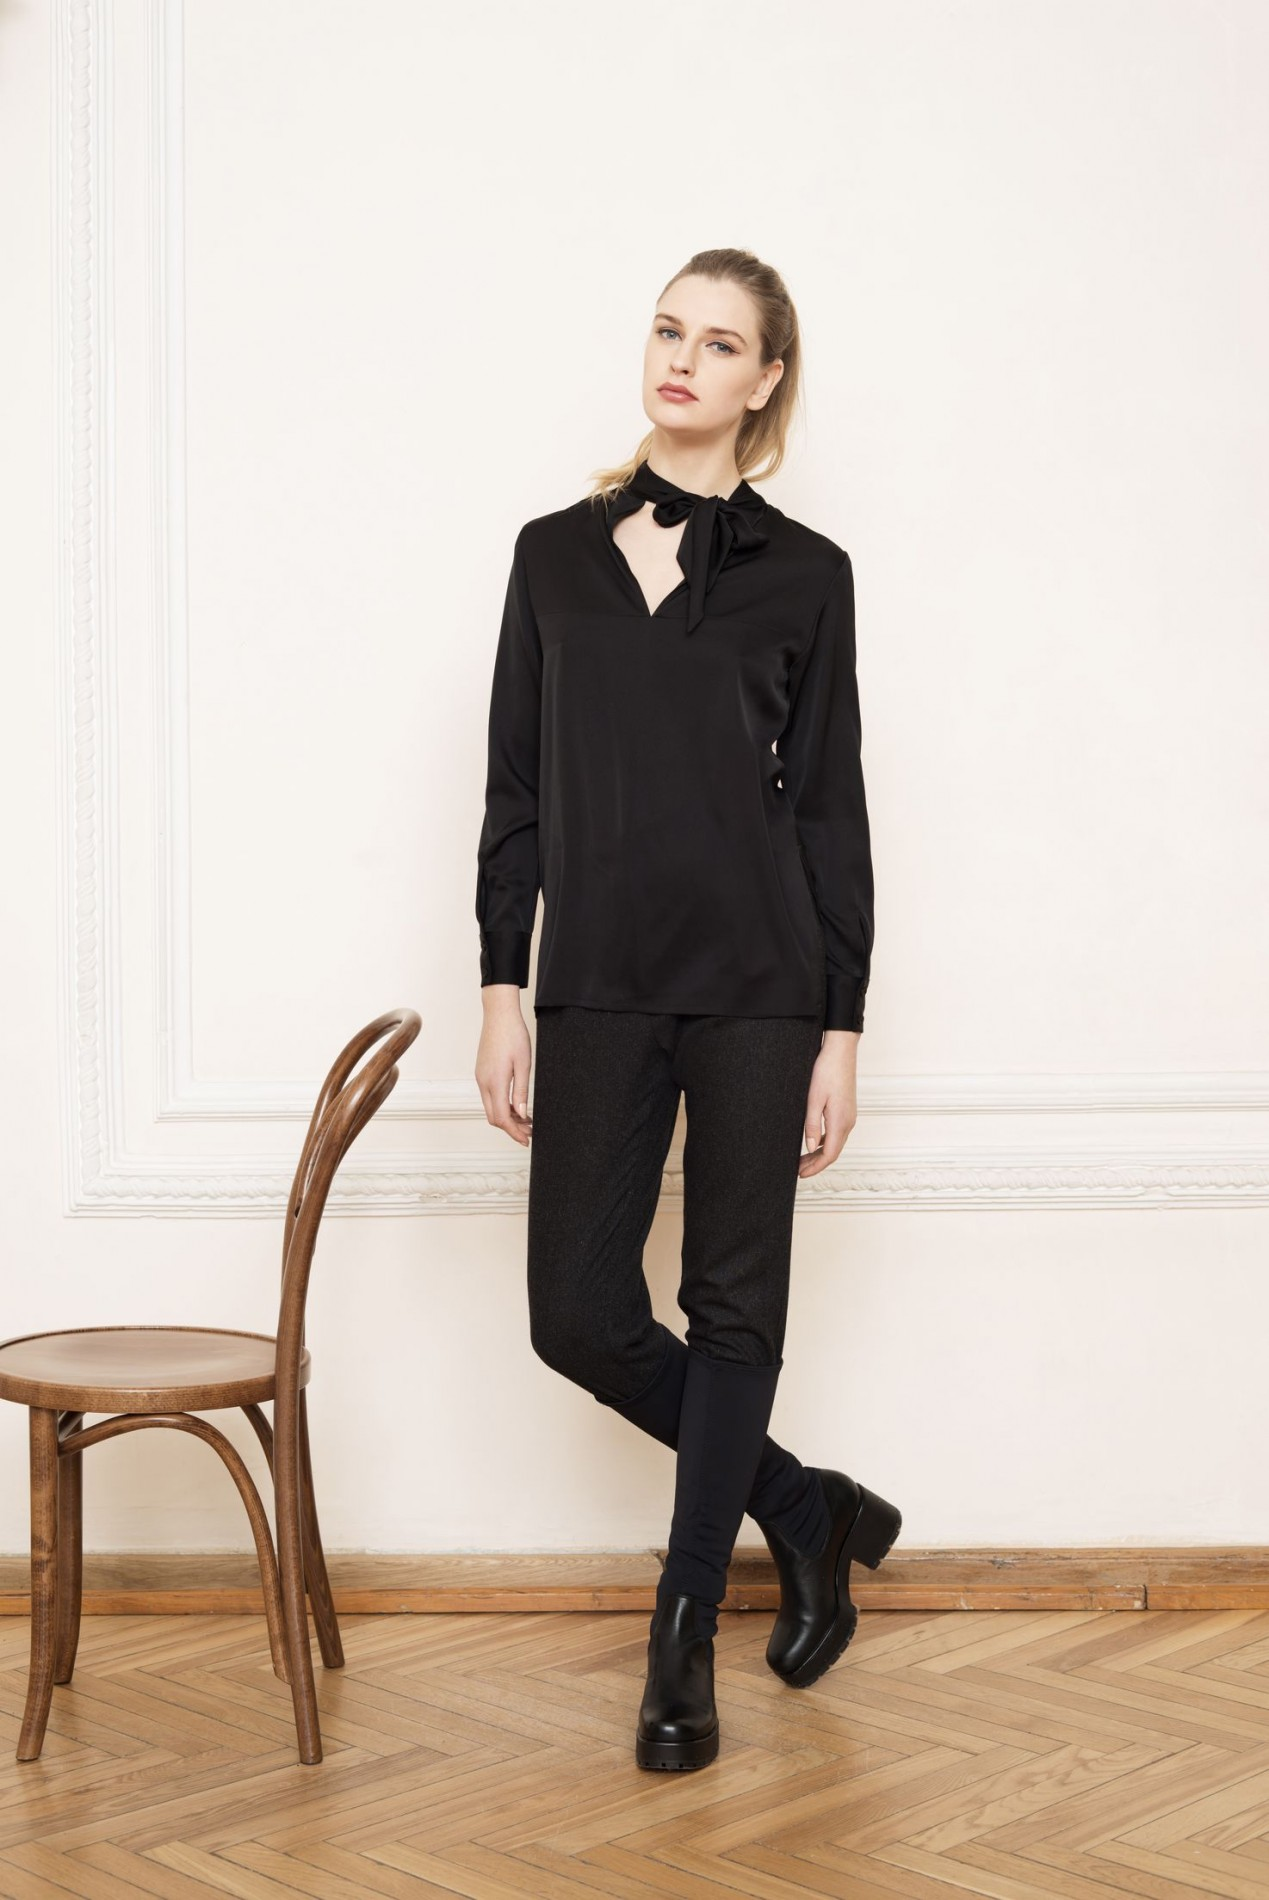 APENNINES Bow-tie Blouse and ALPS Slim Trousers